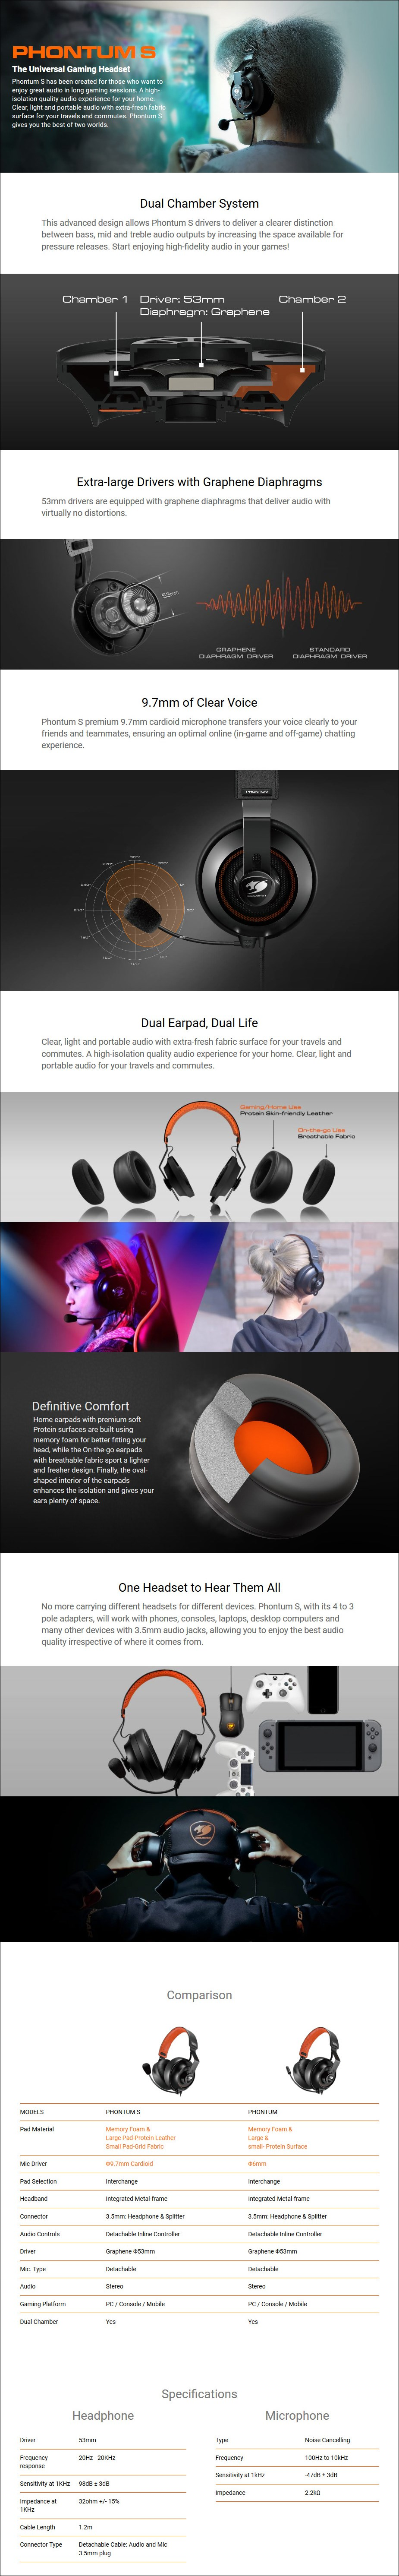 Cougar Phontum S Gaming Headset - Overview 1